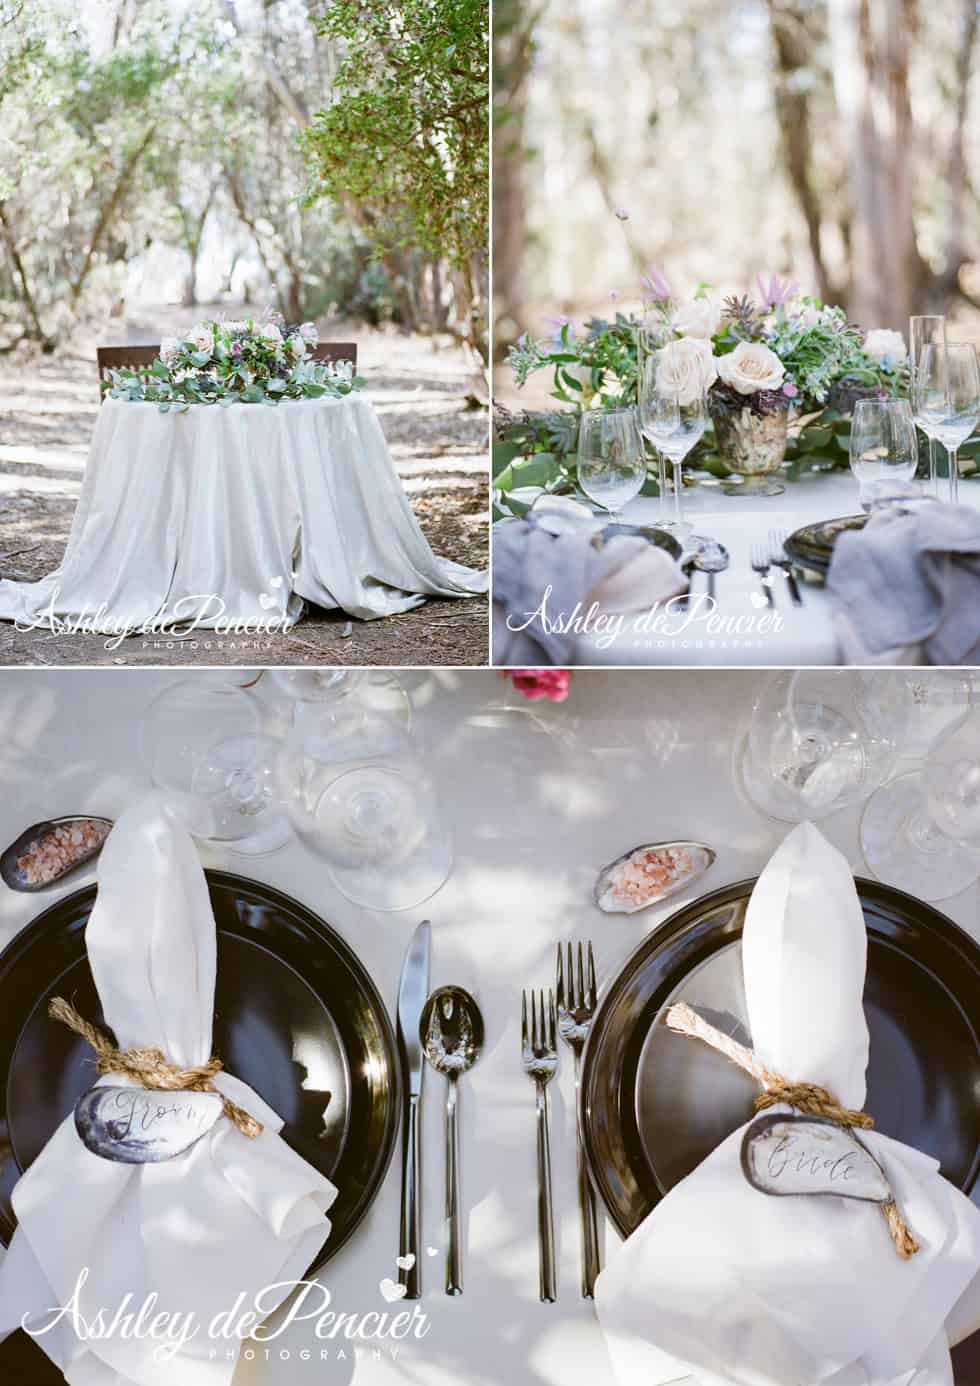 Wedding table settings and table linens